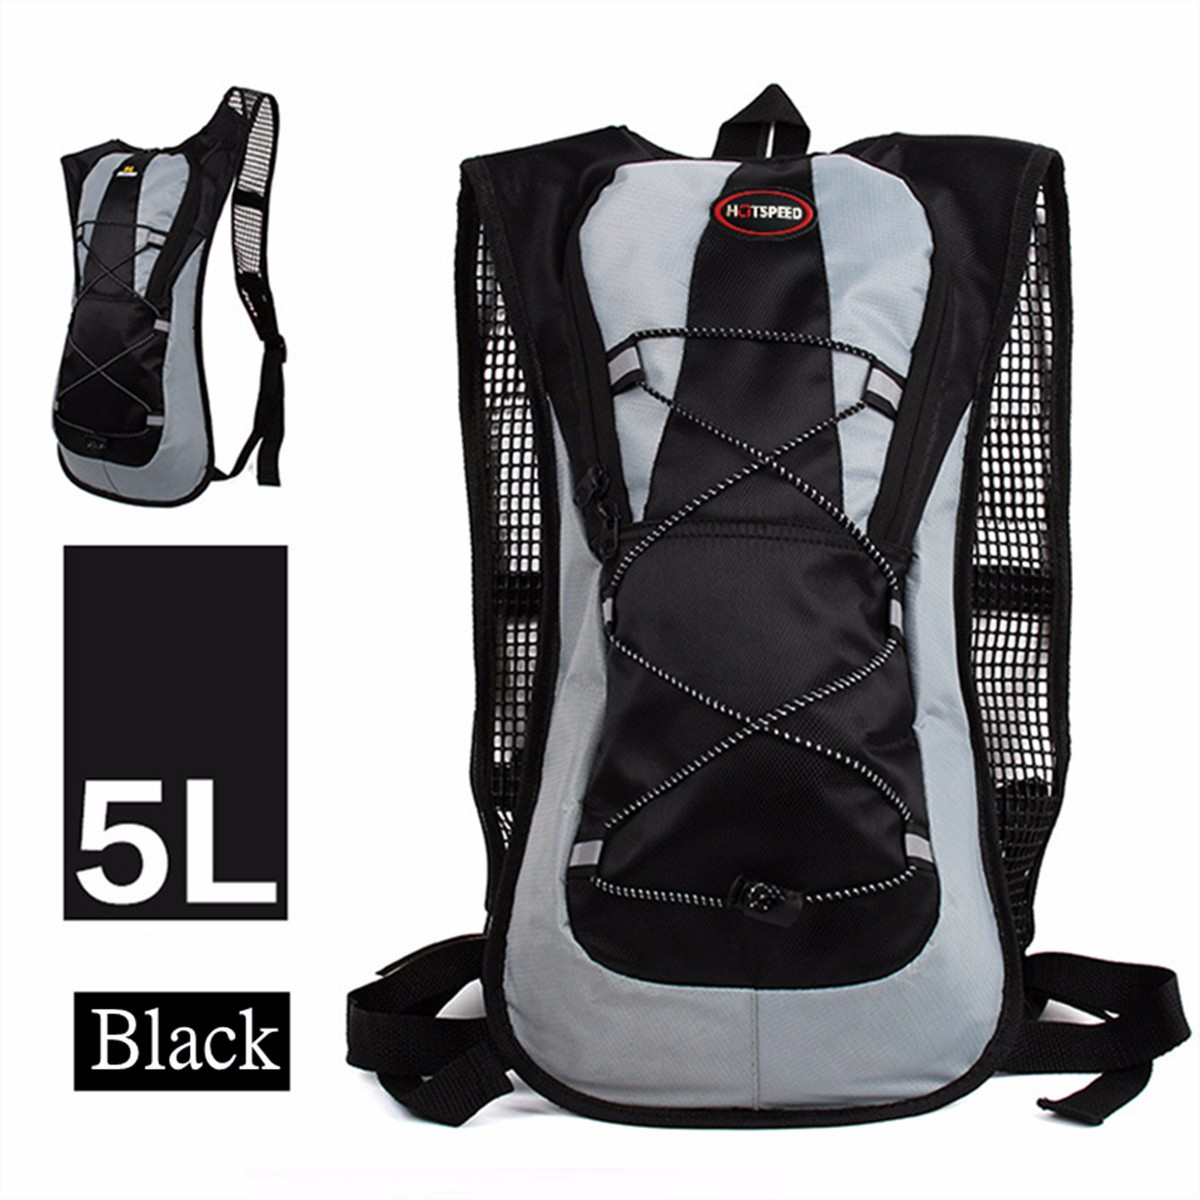 542817245bb IPRee 5L Running Hydration Backpack Rugzak 2L Straw waterzak Bag Om te  wandelen Climbing